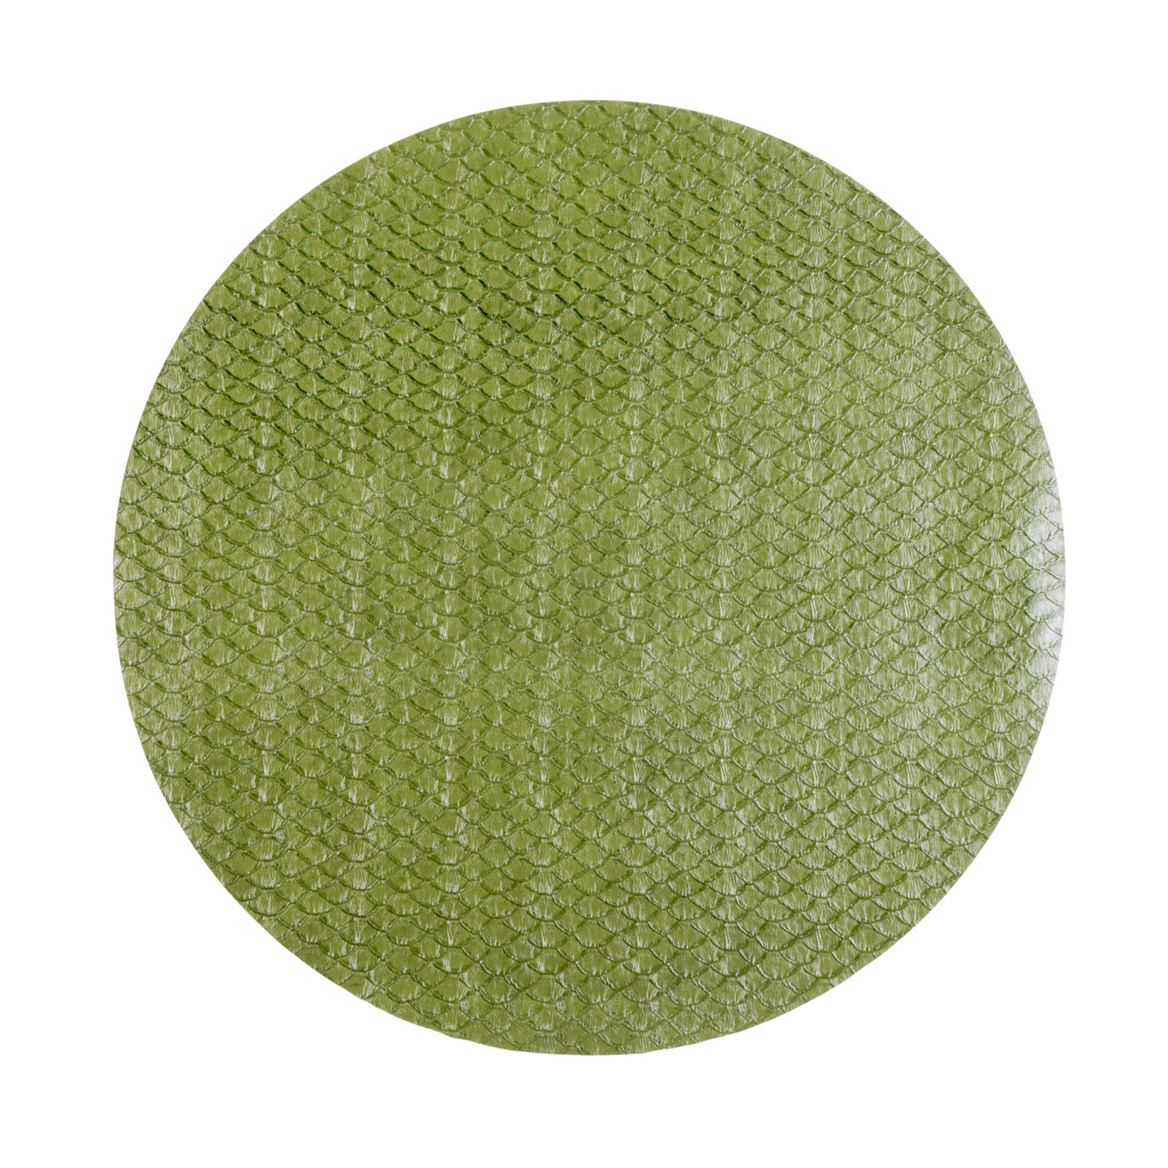 SNAKE SKIN Set de table vert Ø 38 cm_snake-skin-set-de-table-vert-ø-38-cm